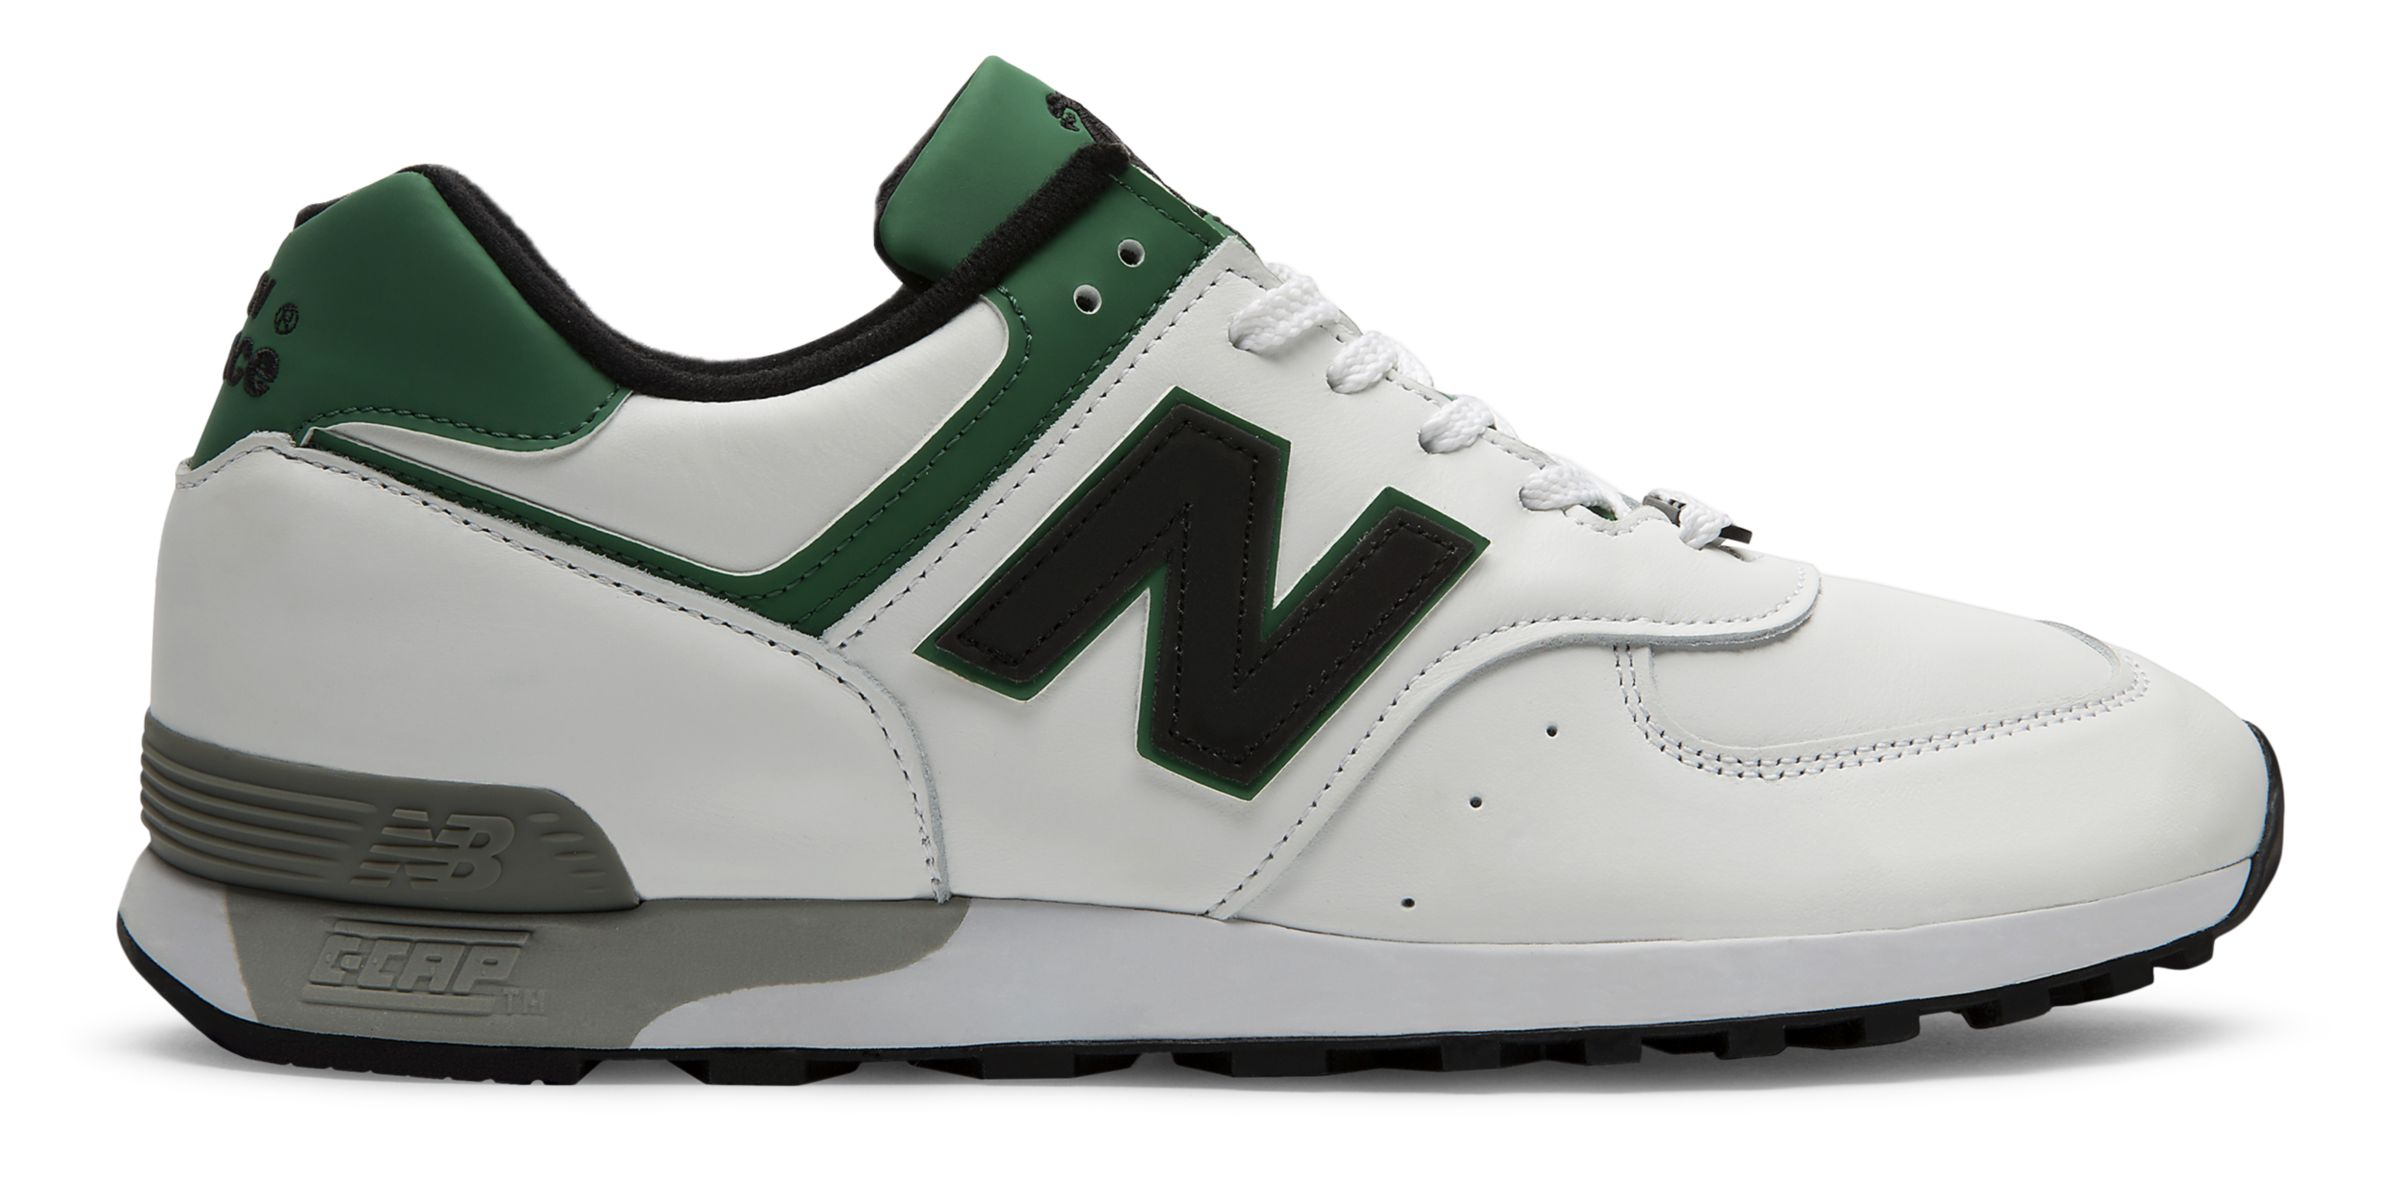 NB 576 Made in UK LFC, White with Green & Black